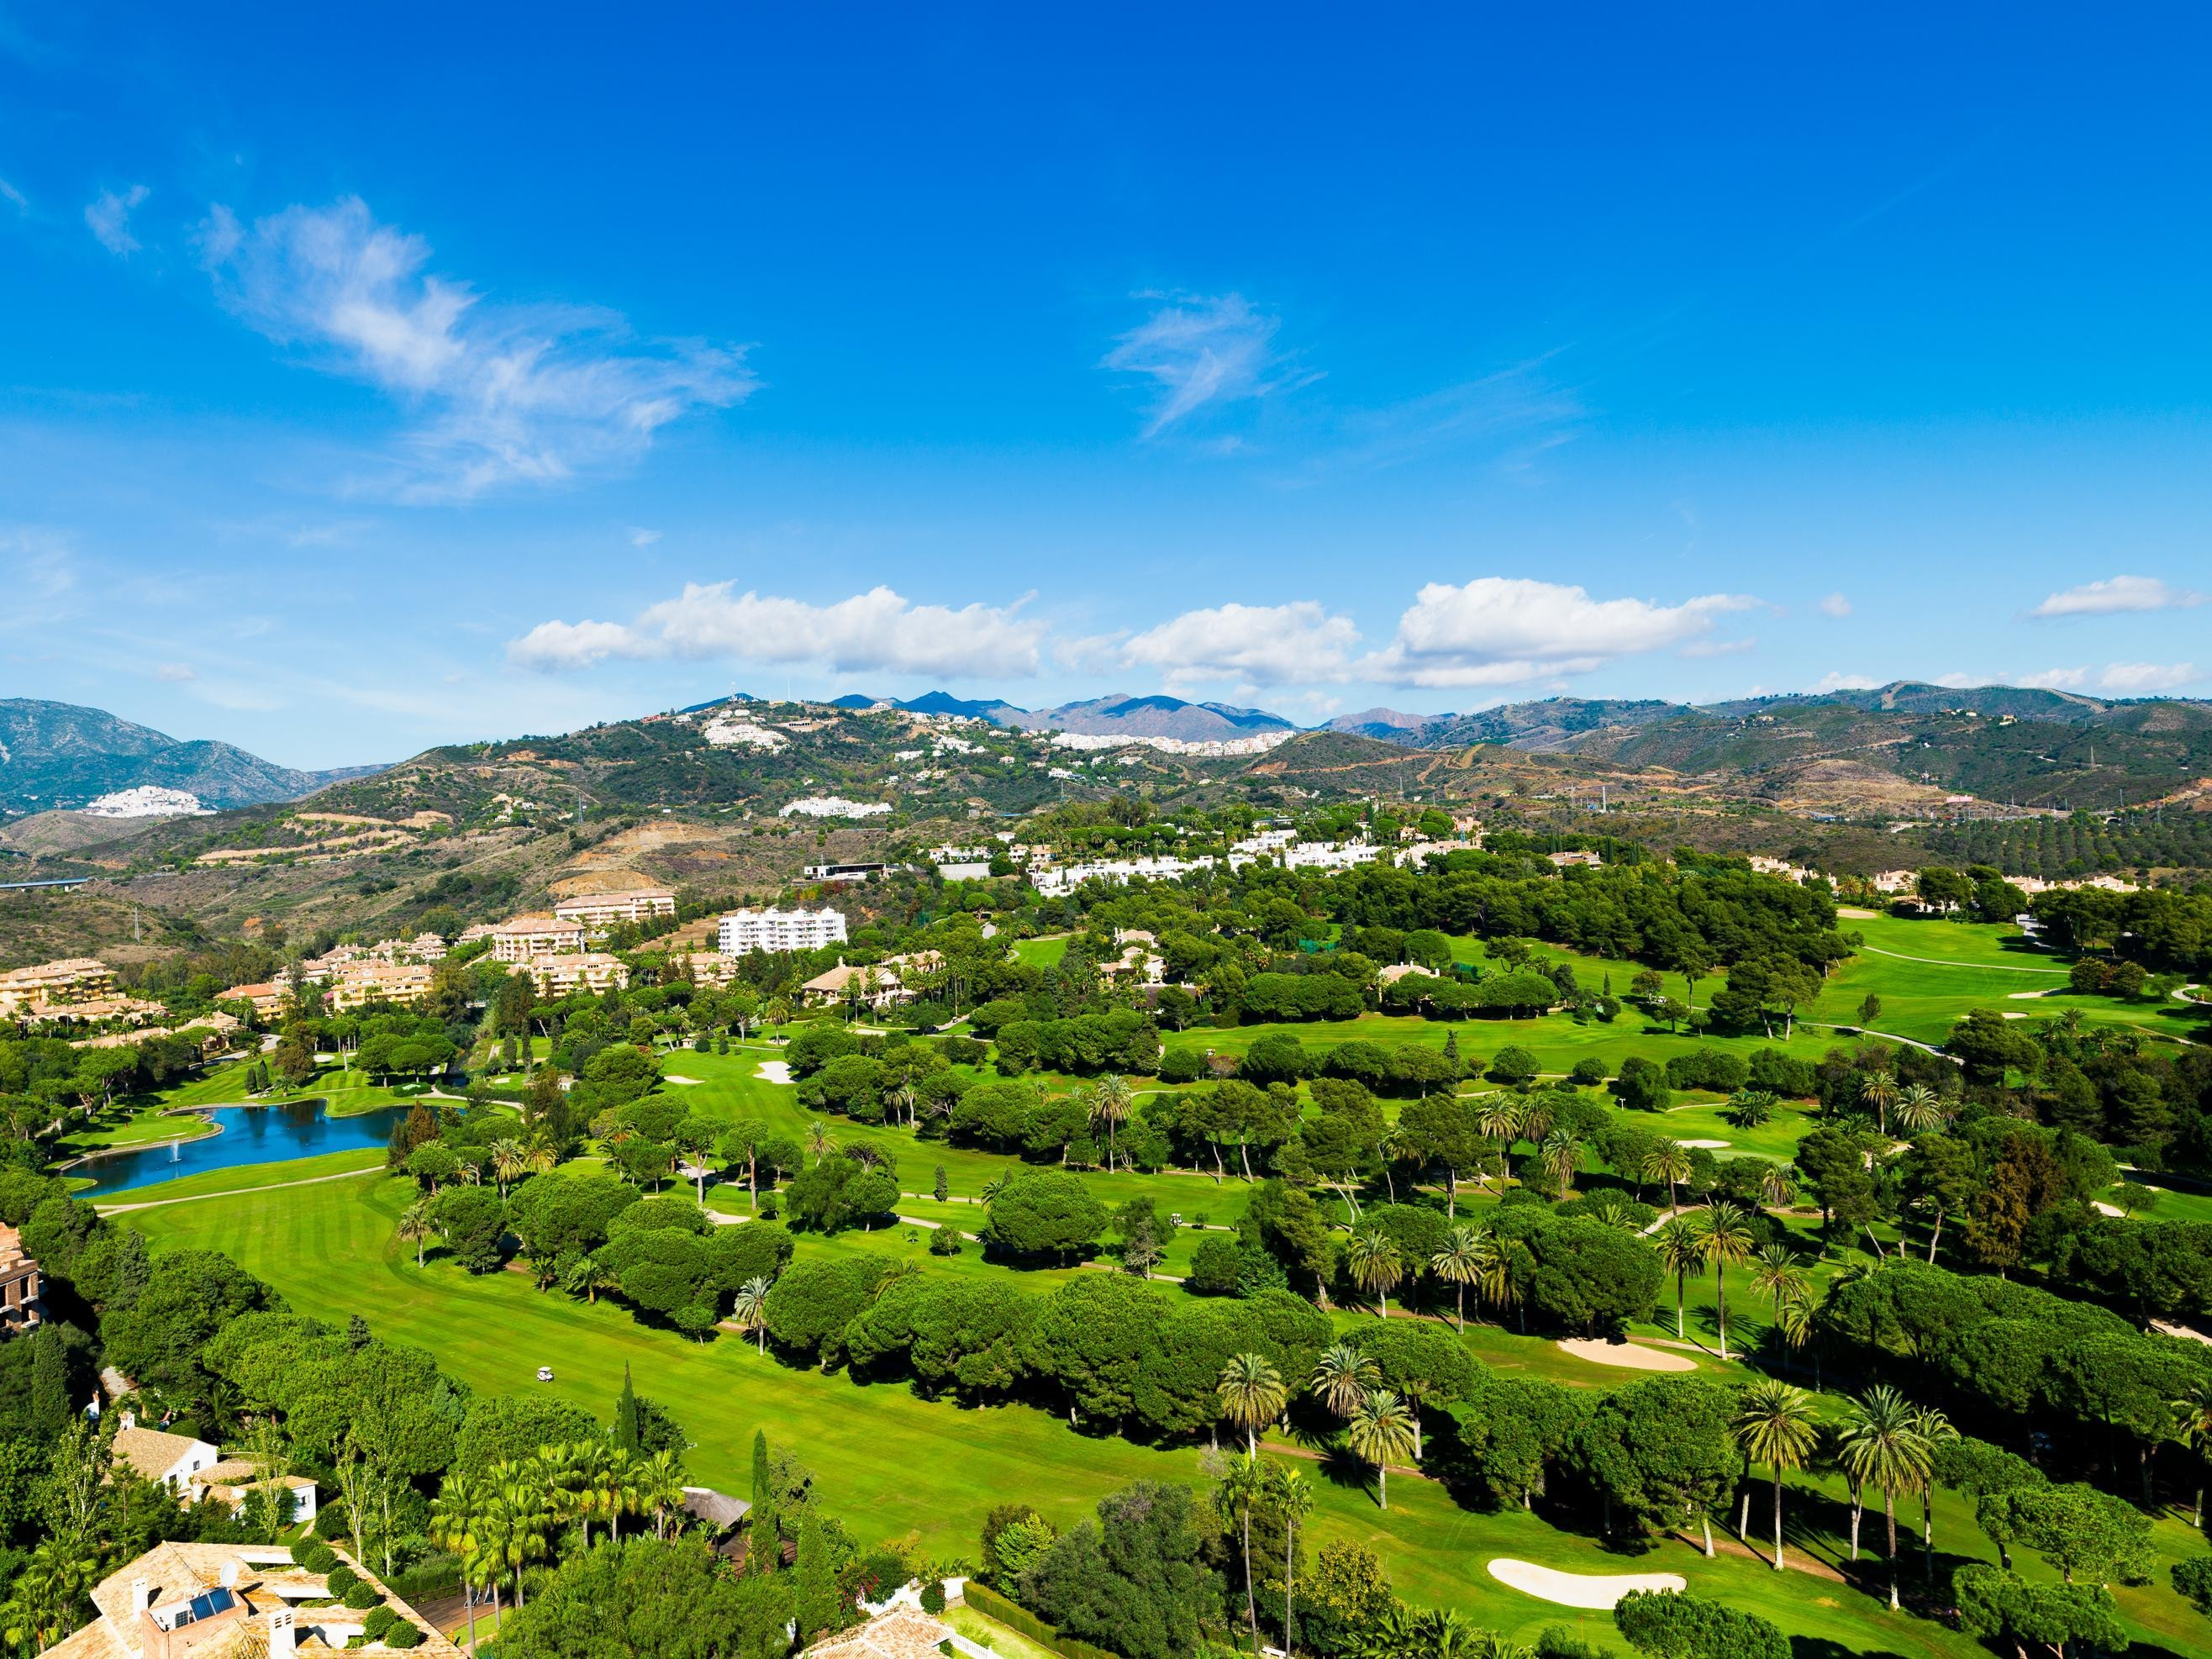 How to Spend 1 Day in Marbella